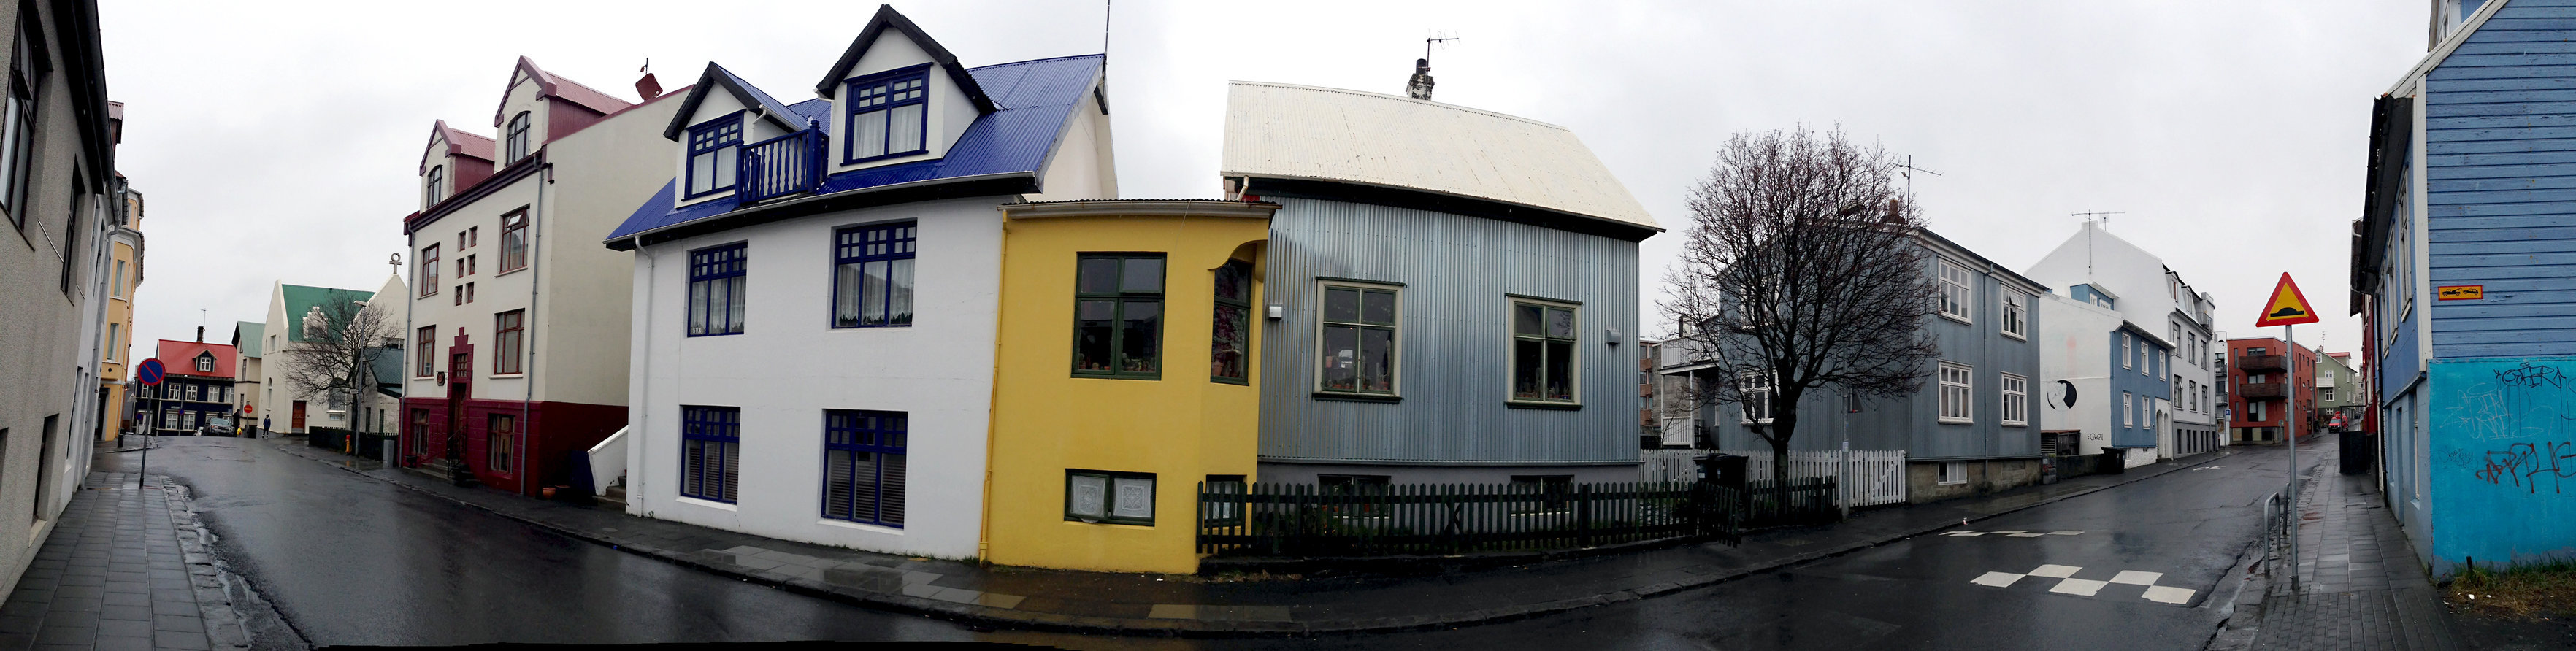 © CORDAY - Iceland, No. 206 - Yellow House